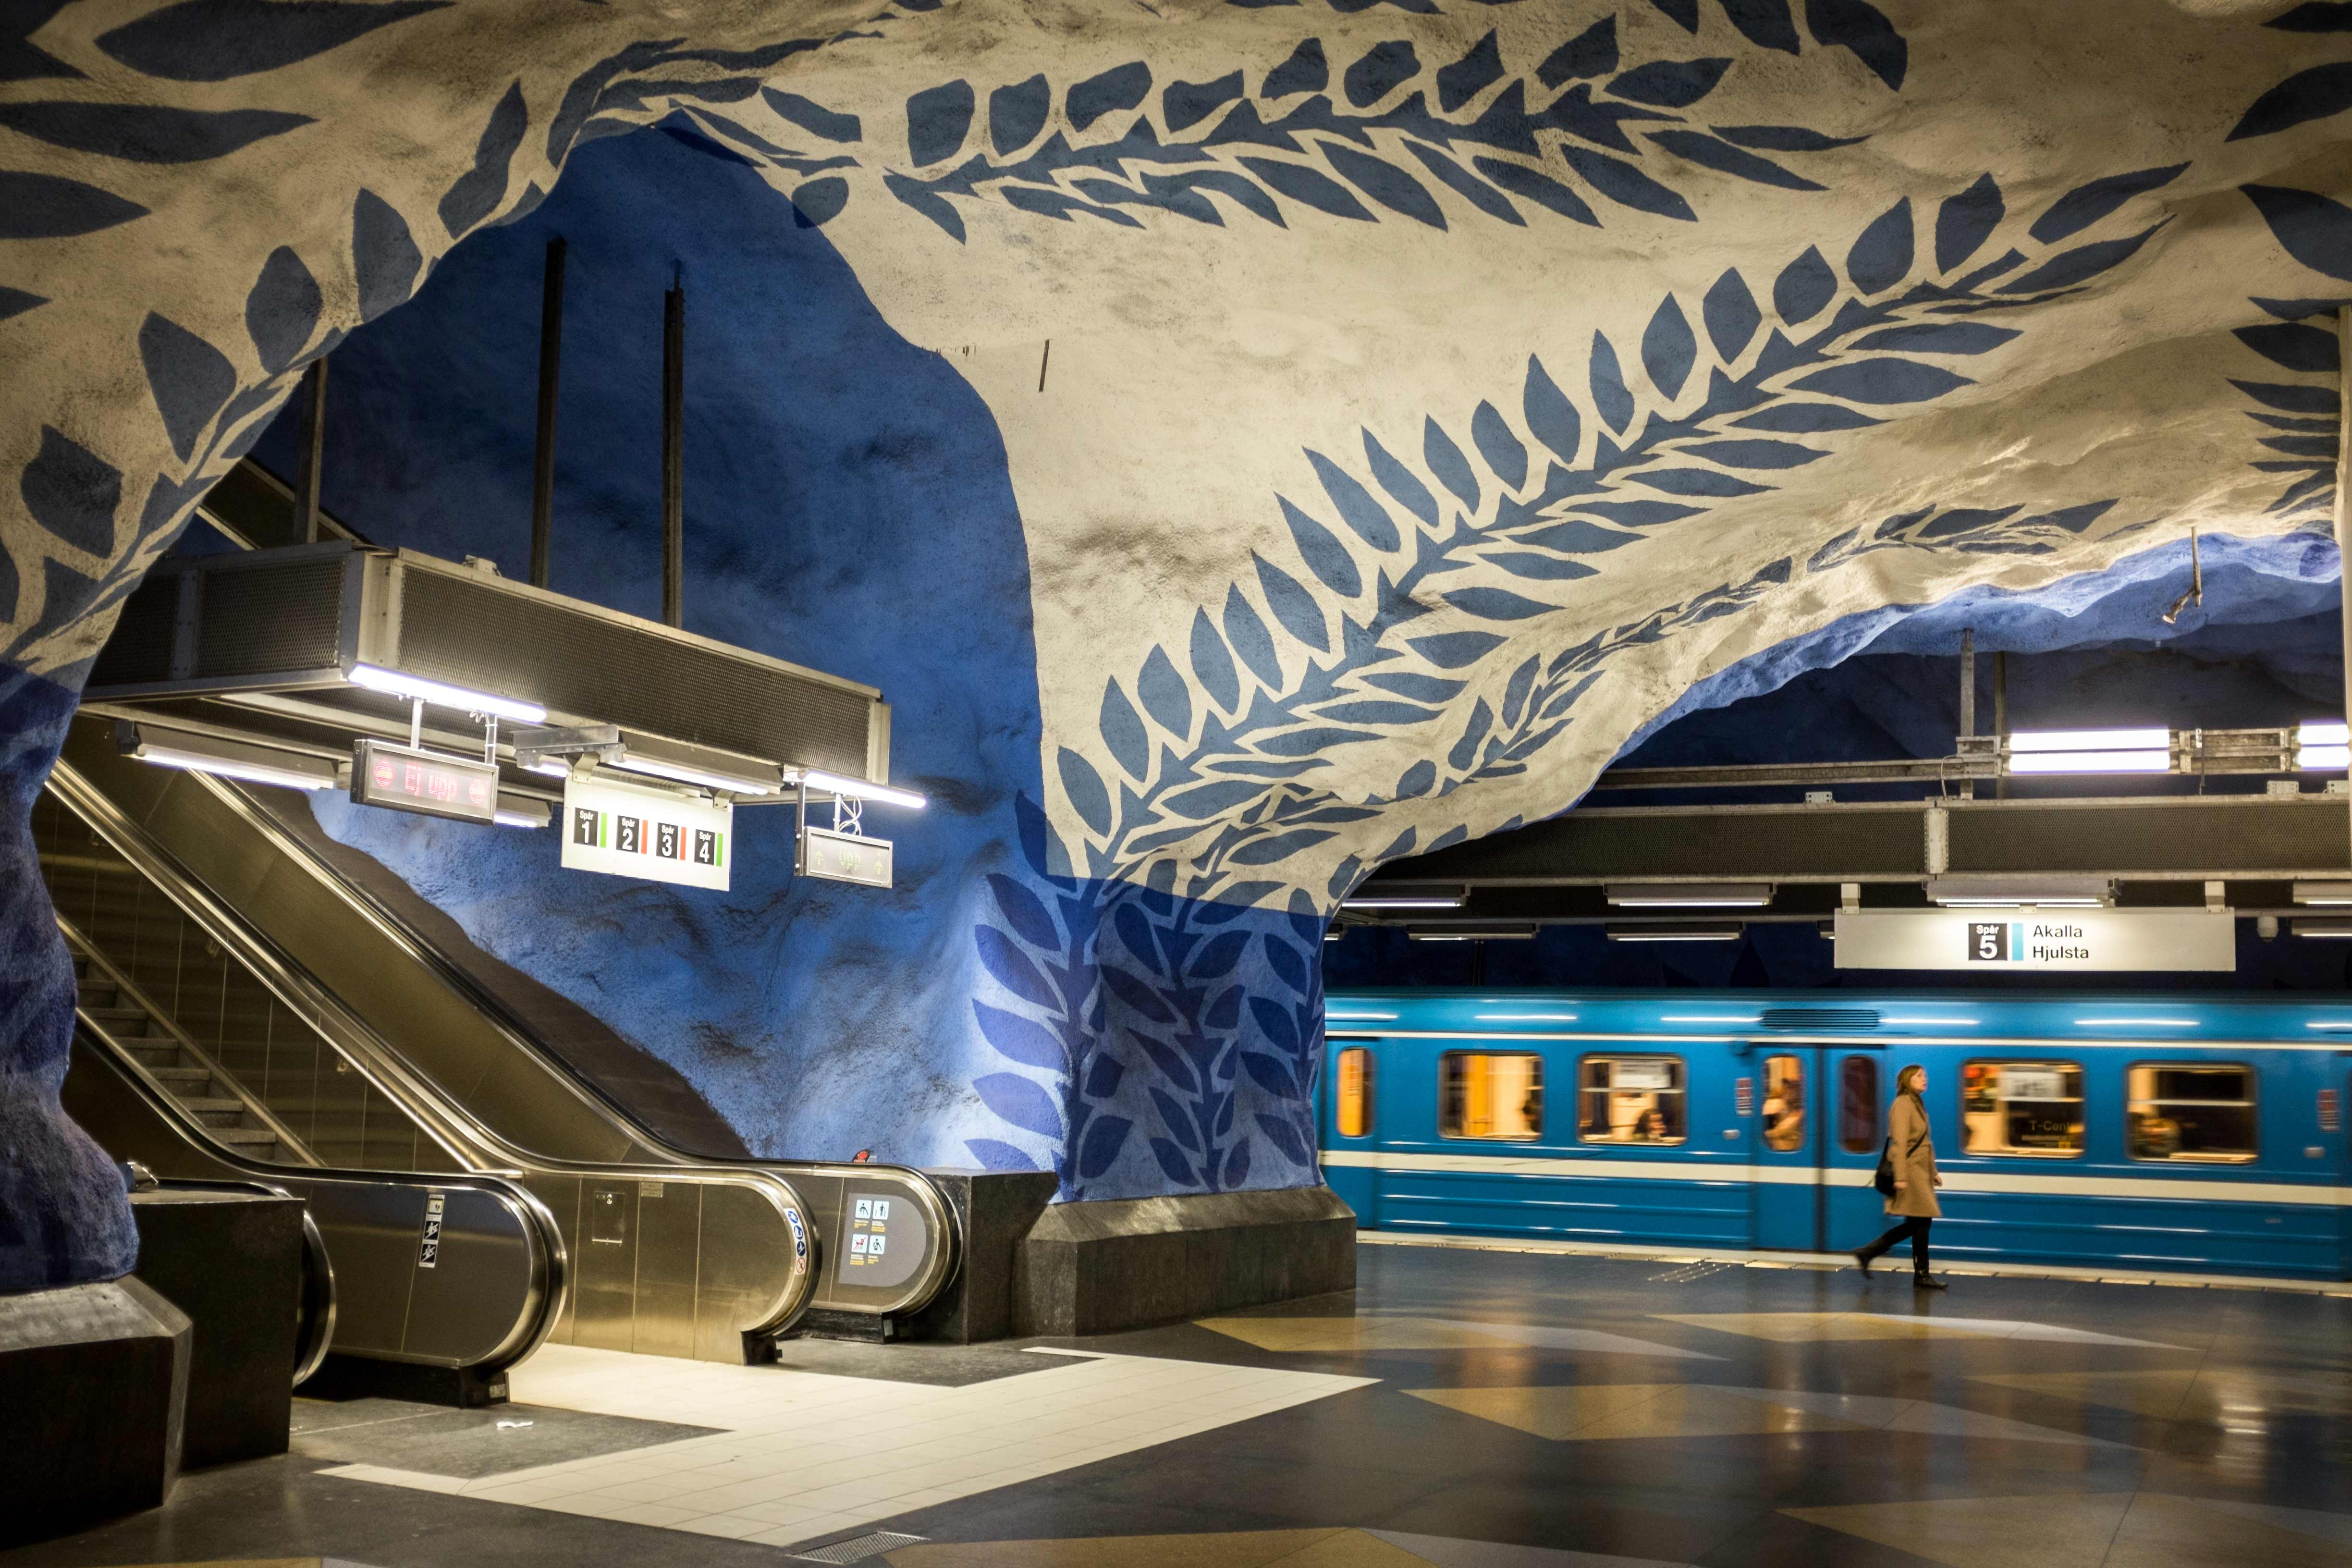 The Tunnelbana Metro In Stockholm Also Known As Worlds Longest Art Gallery